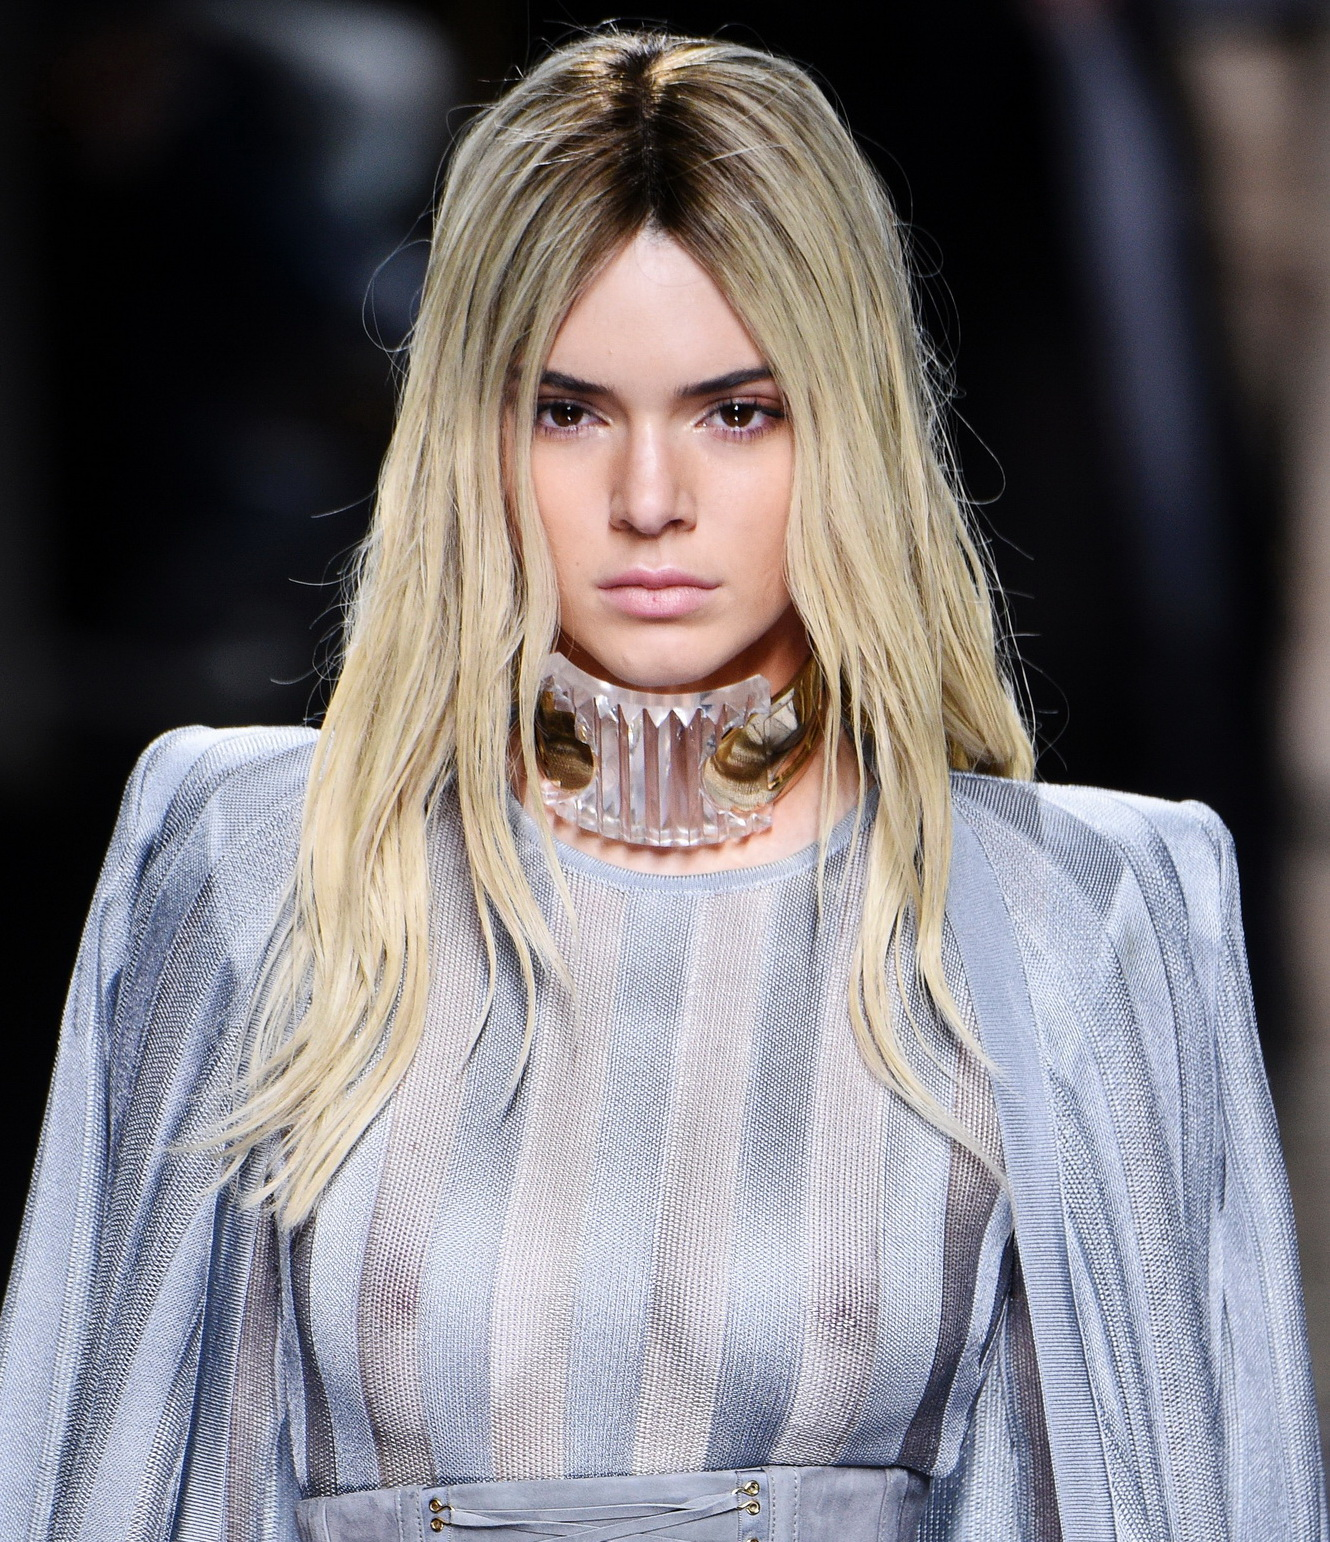 kendall-jenner-see-through-top-at-balmain-show-10